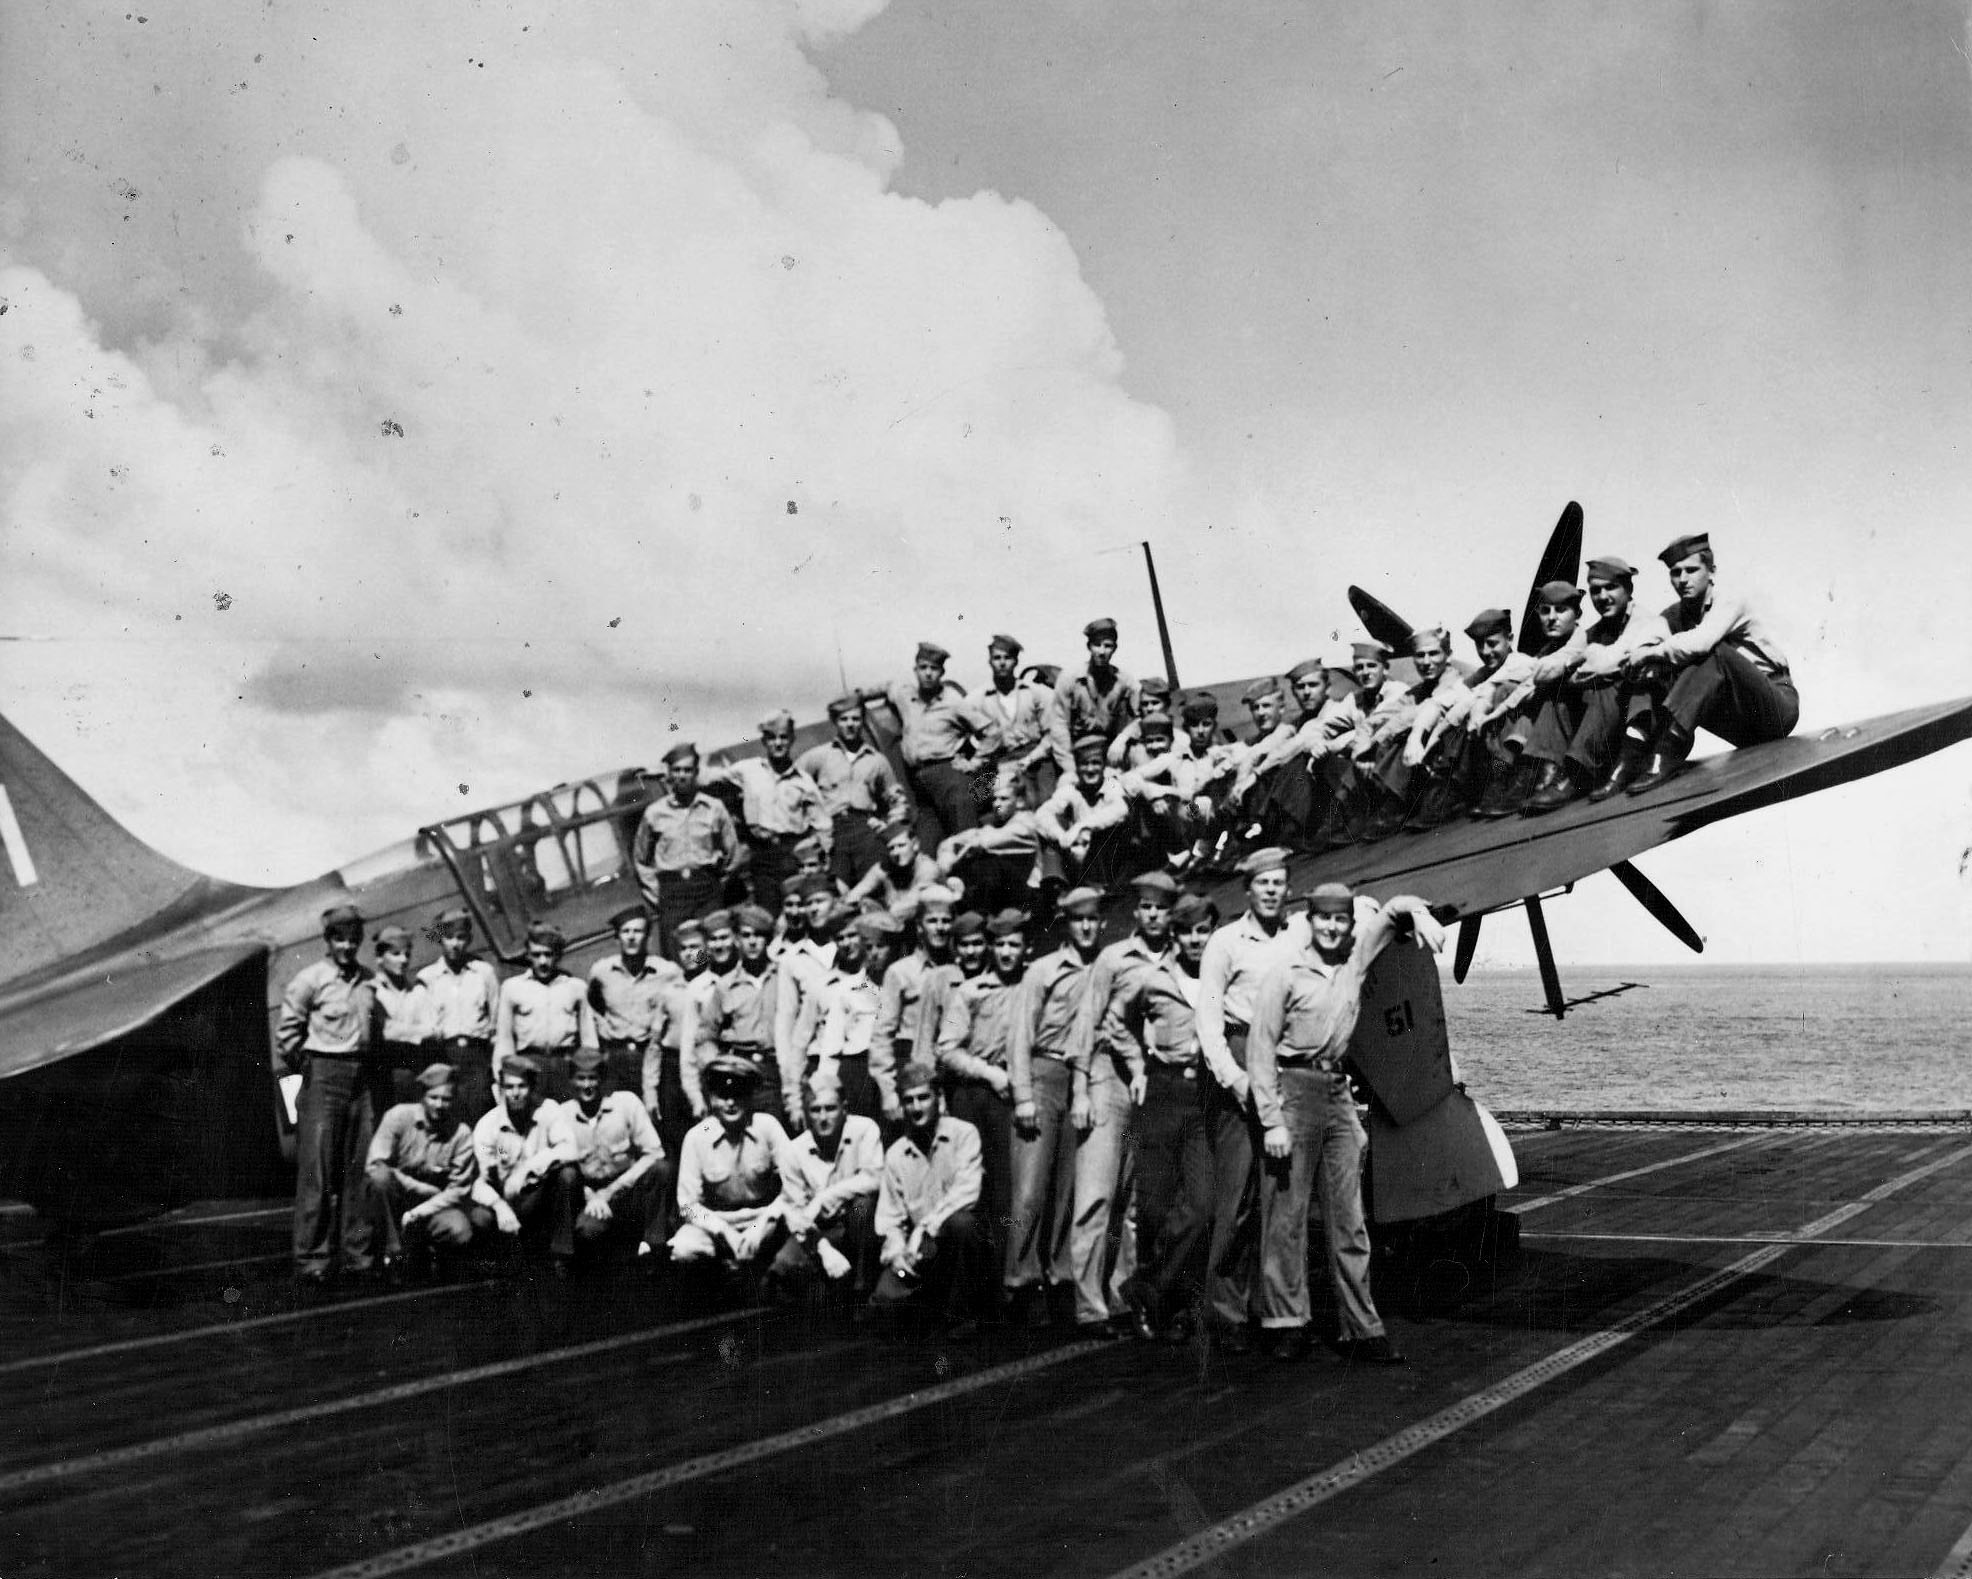 Curtiss SB2C 3 Helldiver VB 4 officers and flt crew aboard CV 6 USS Essex at Ulithi Atoll 1944 01